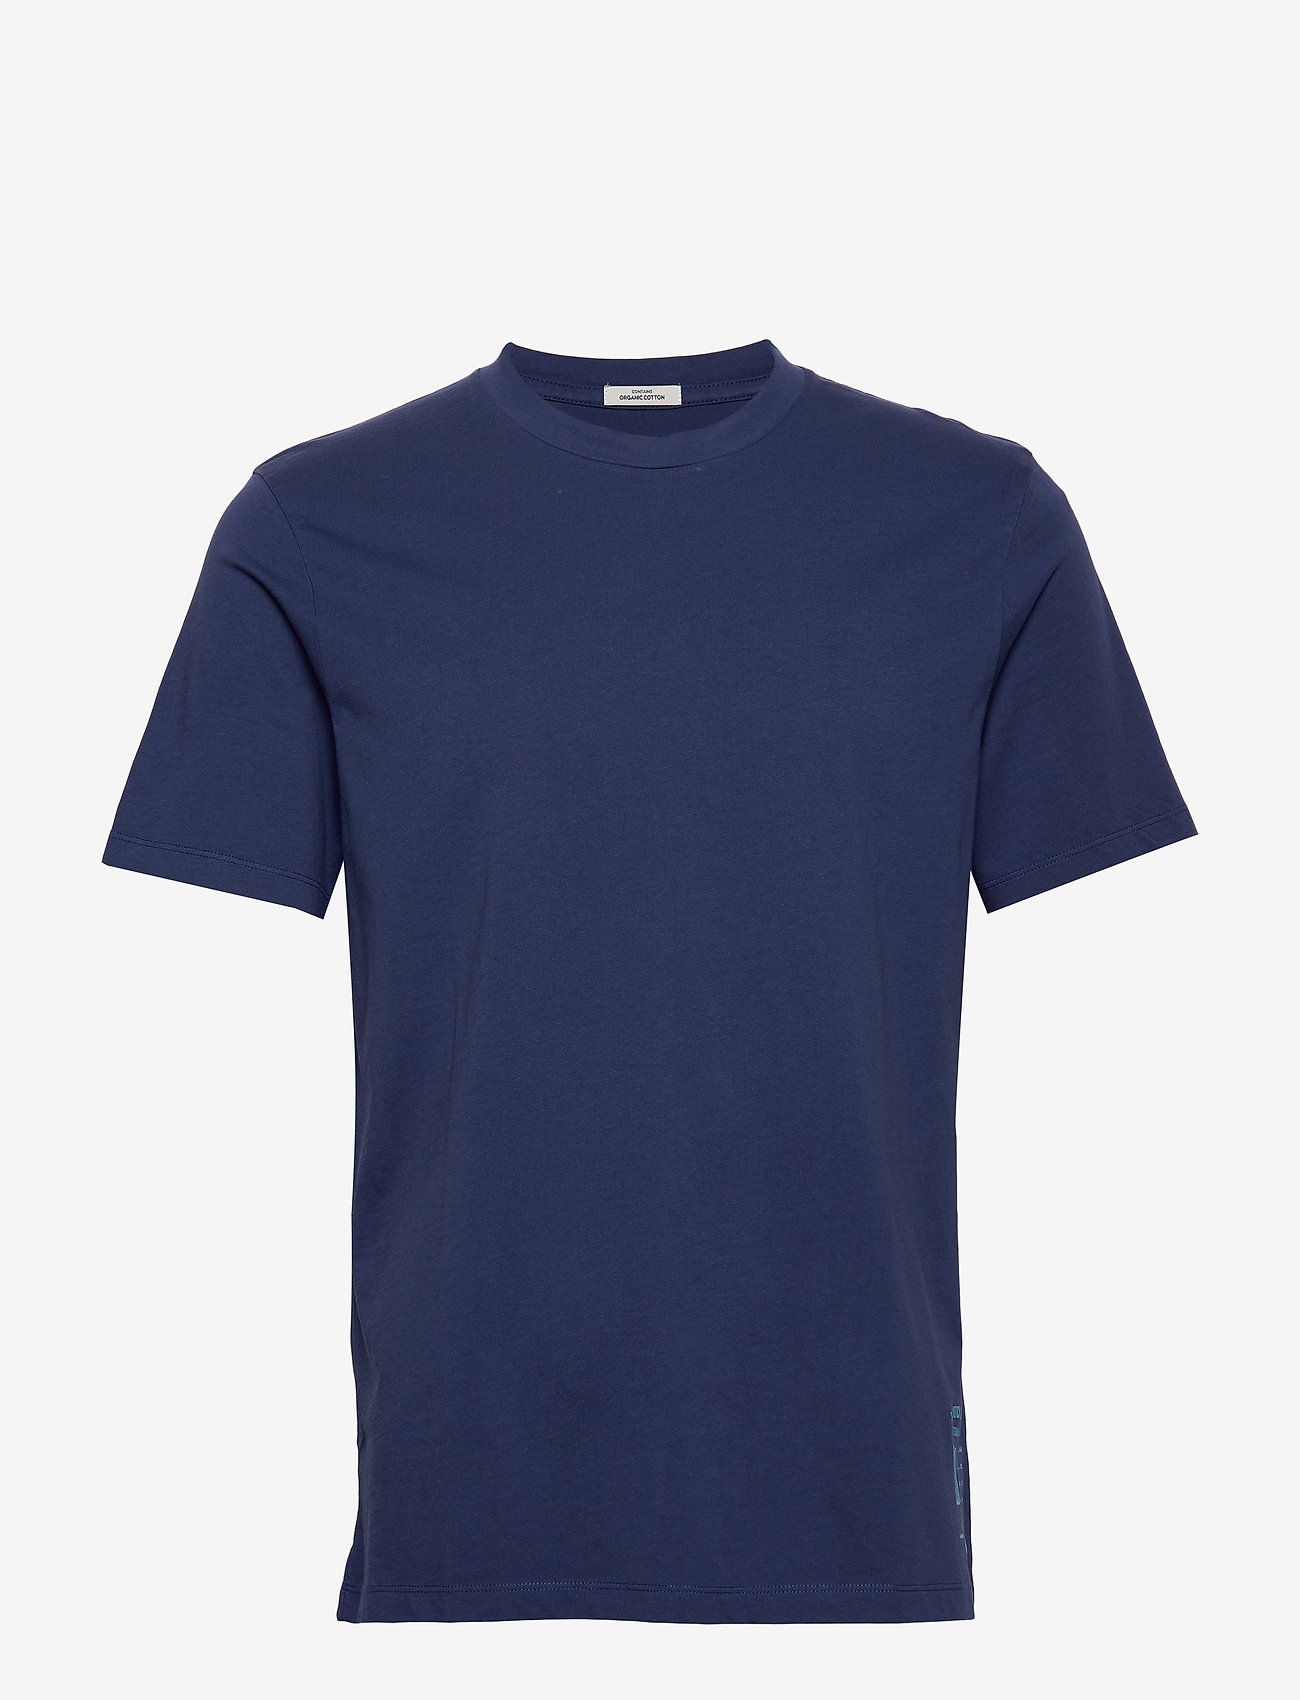 Scotch & Soda - Classic crewneck tee in organic cotton jersey - t-shirts basiques - worker blue - 0